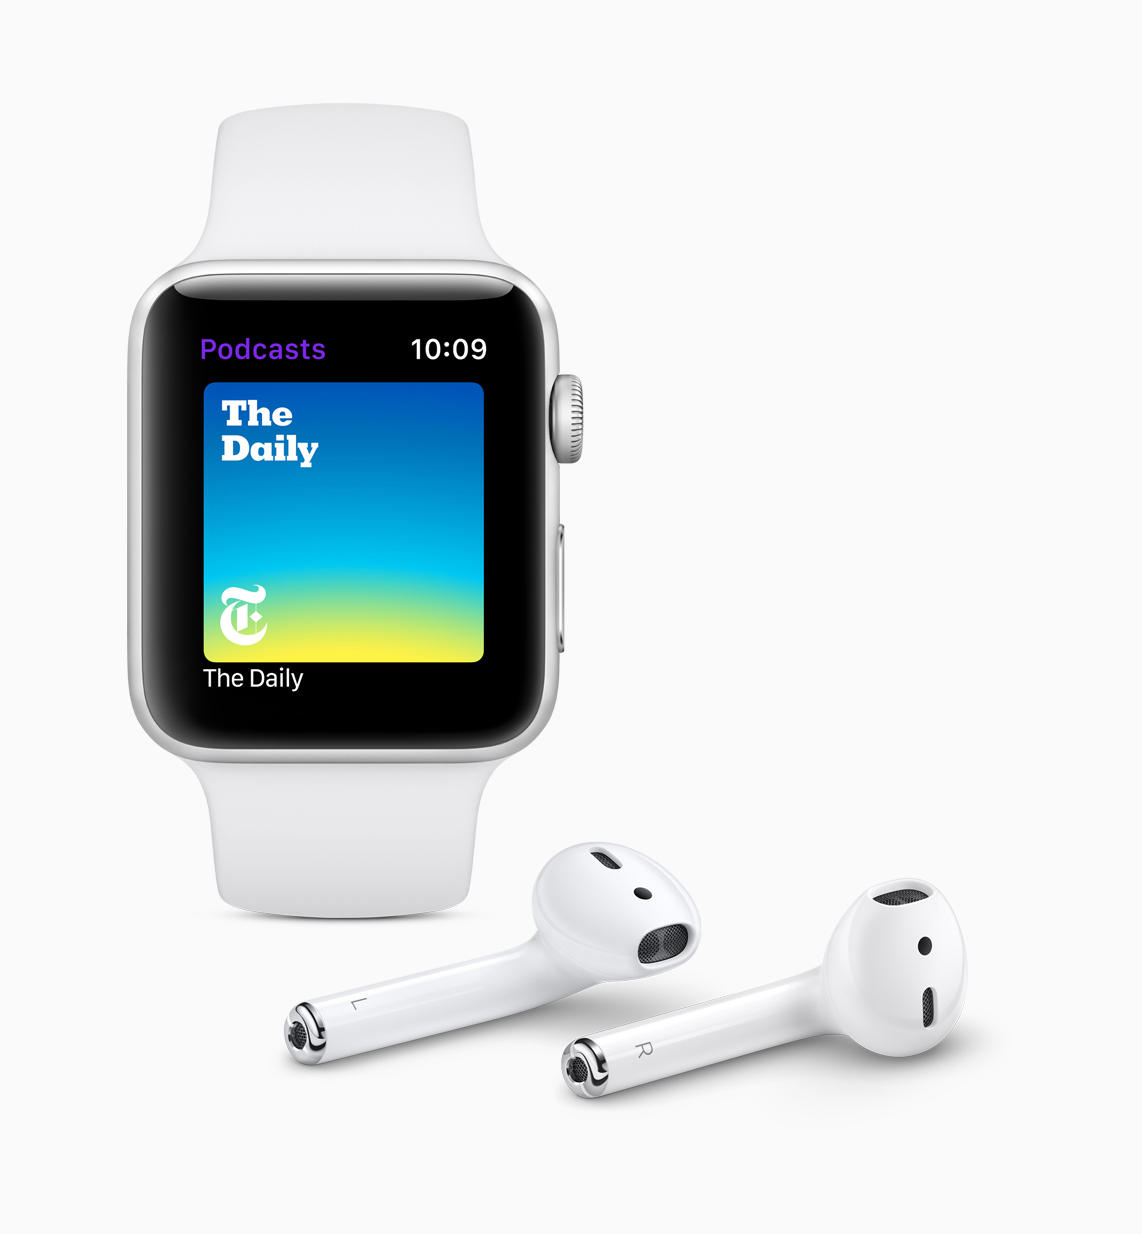 apple-watchos-5-podcasts-screen-06042018